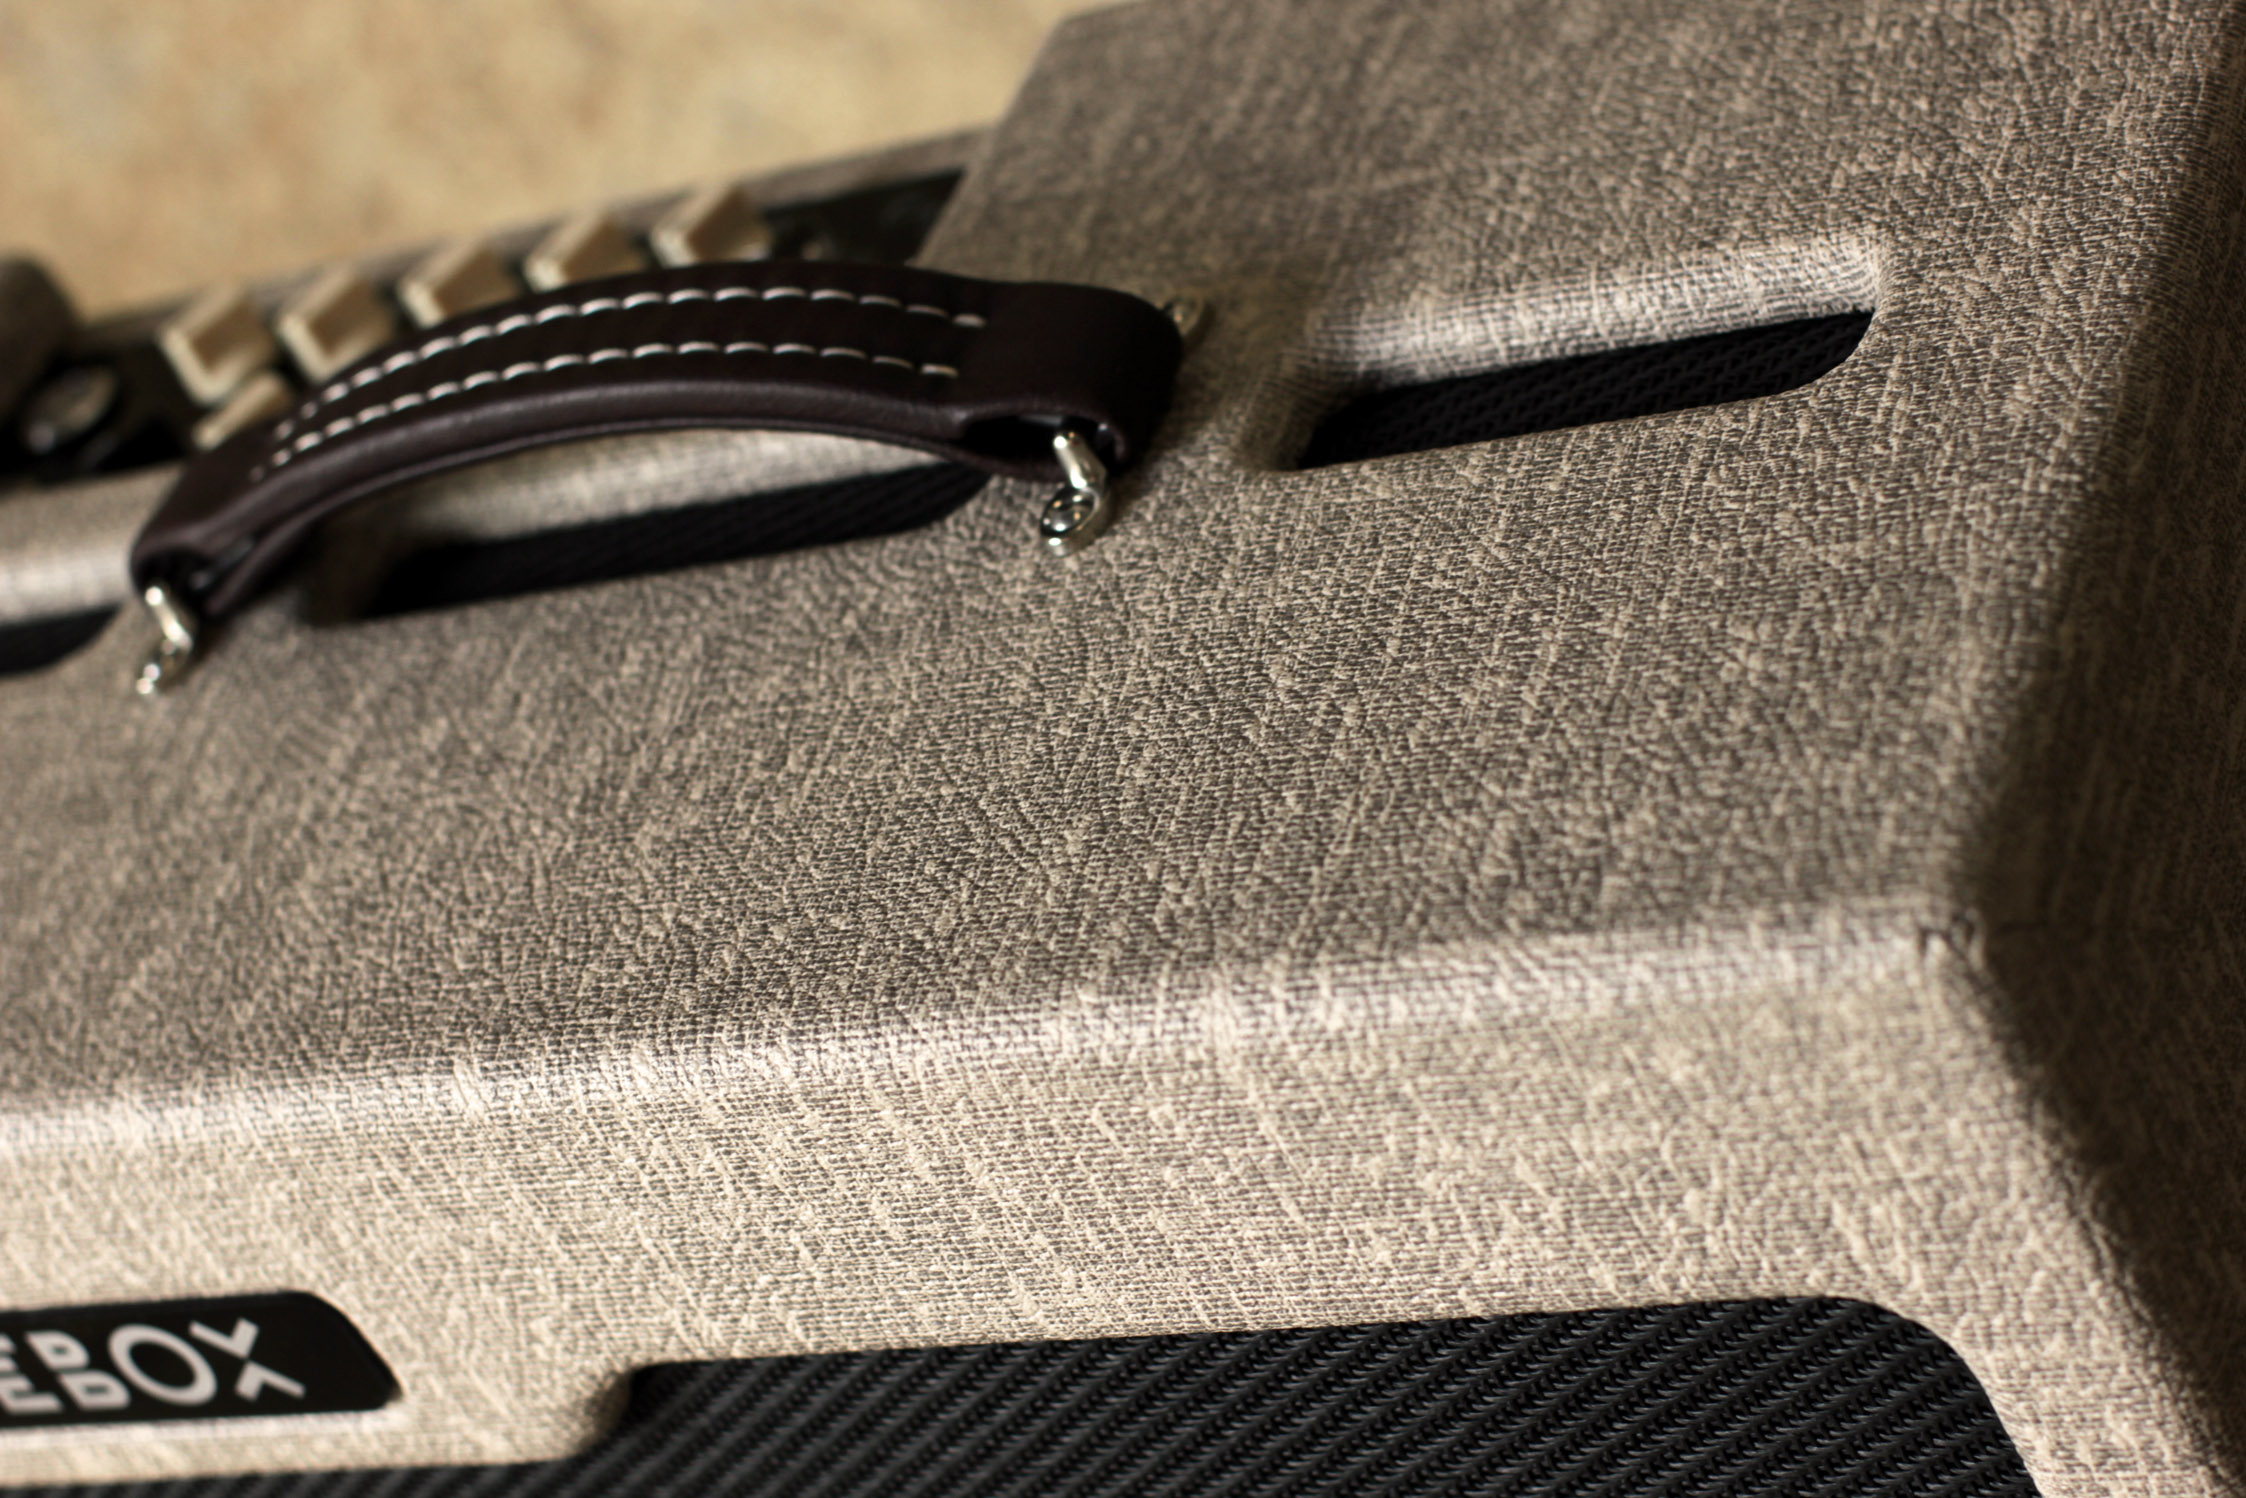 tolex, vox, handwired, hardwired, leather handle